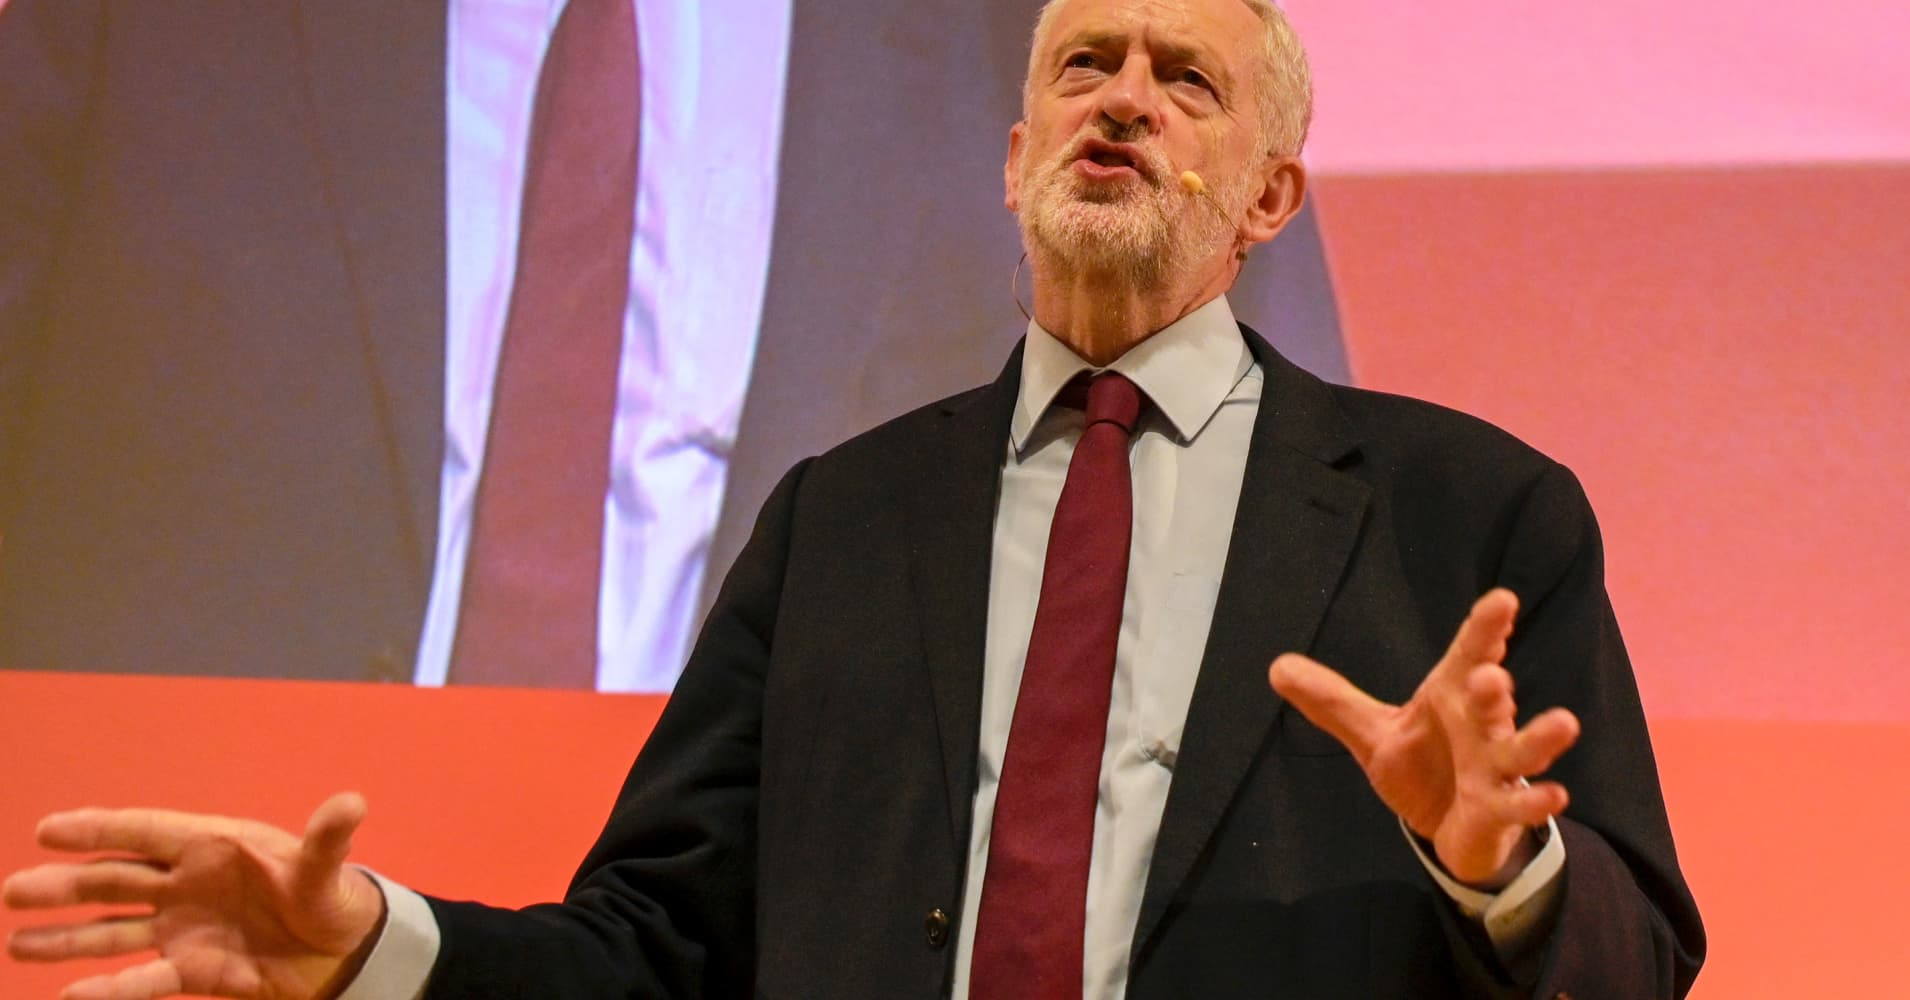 UK Labour Party will bring no confidence motion when it's likely to be successful